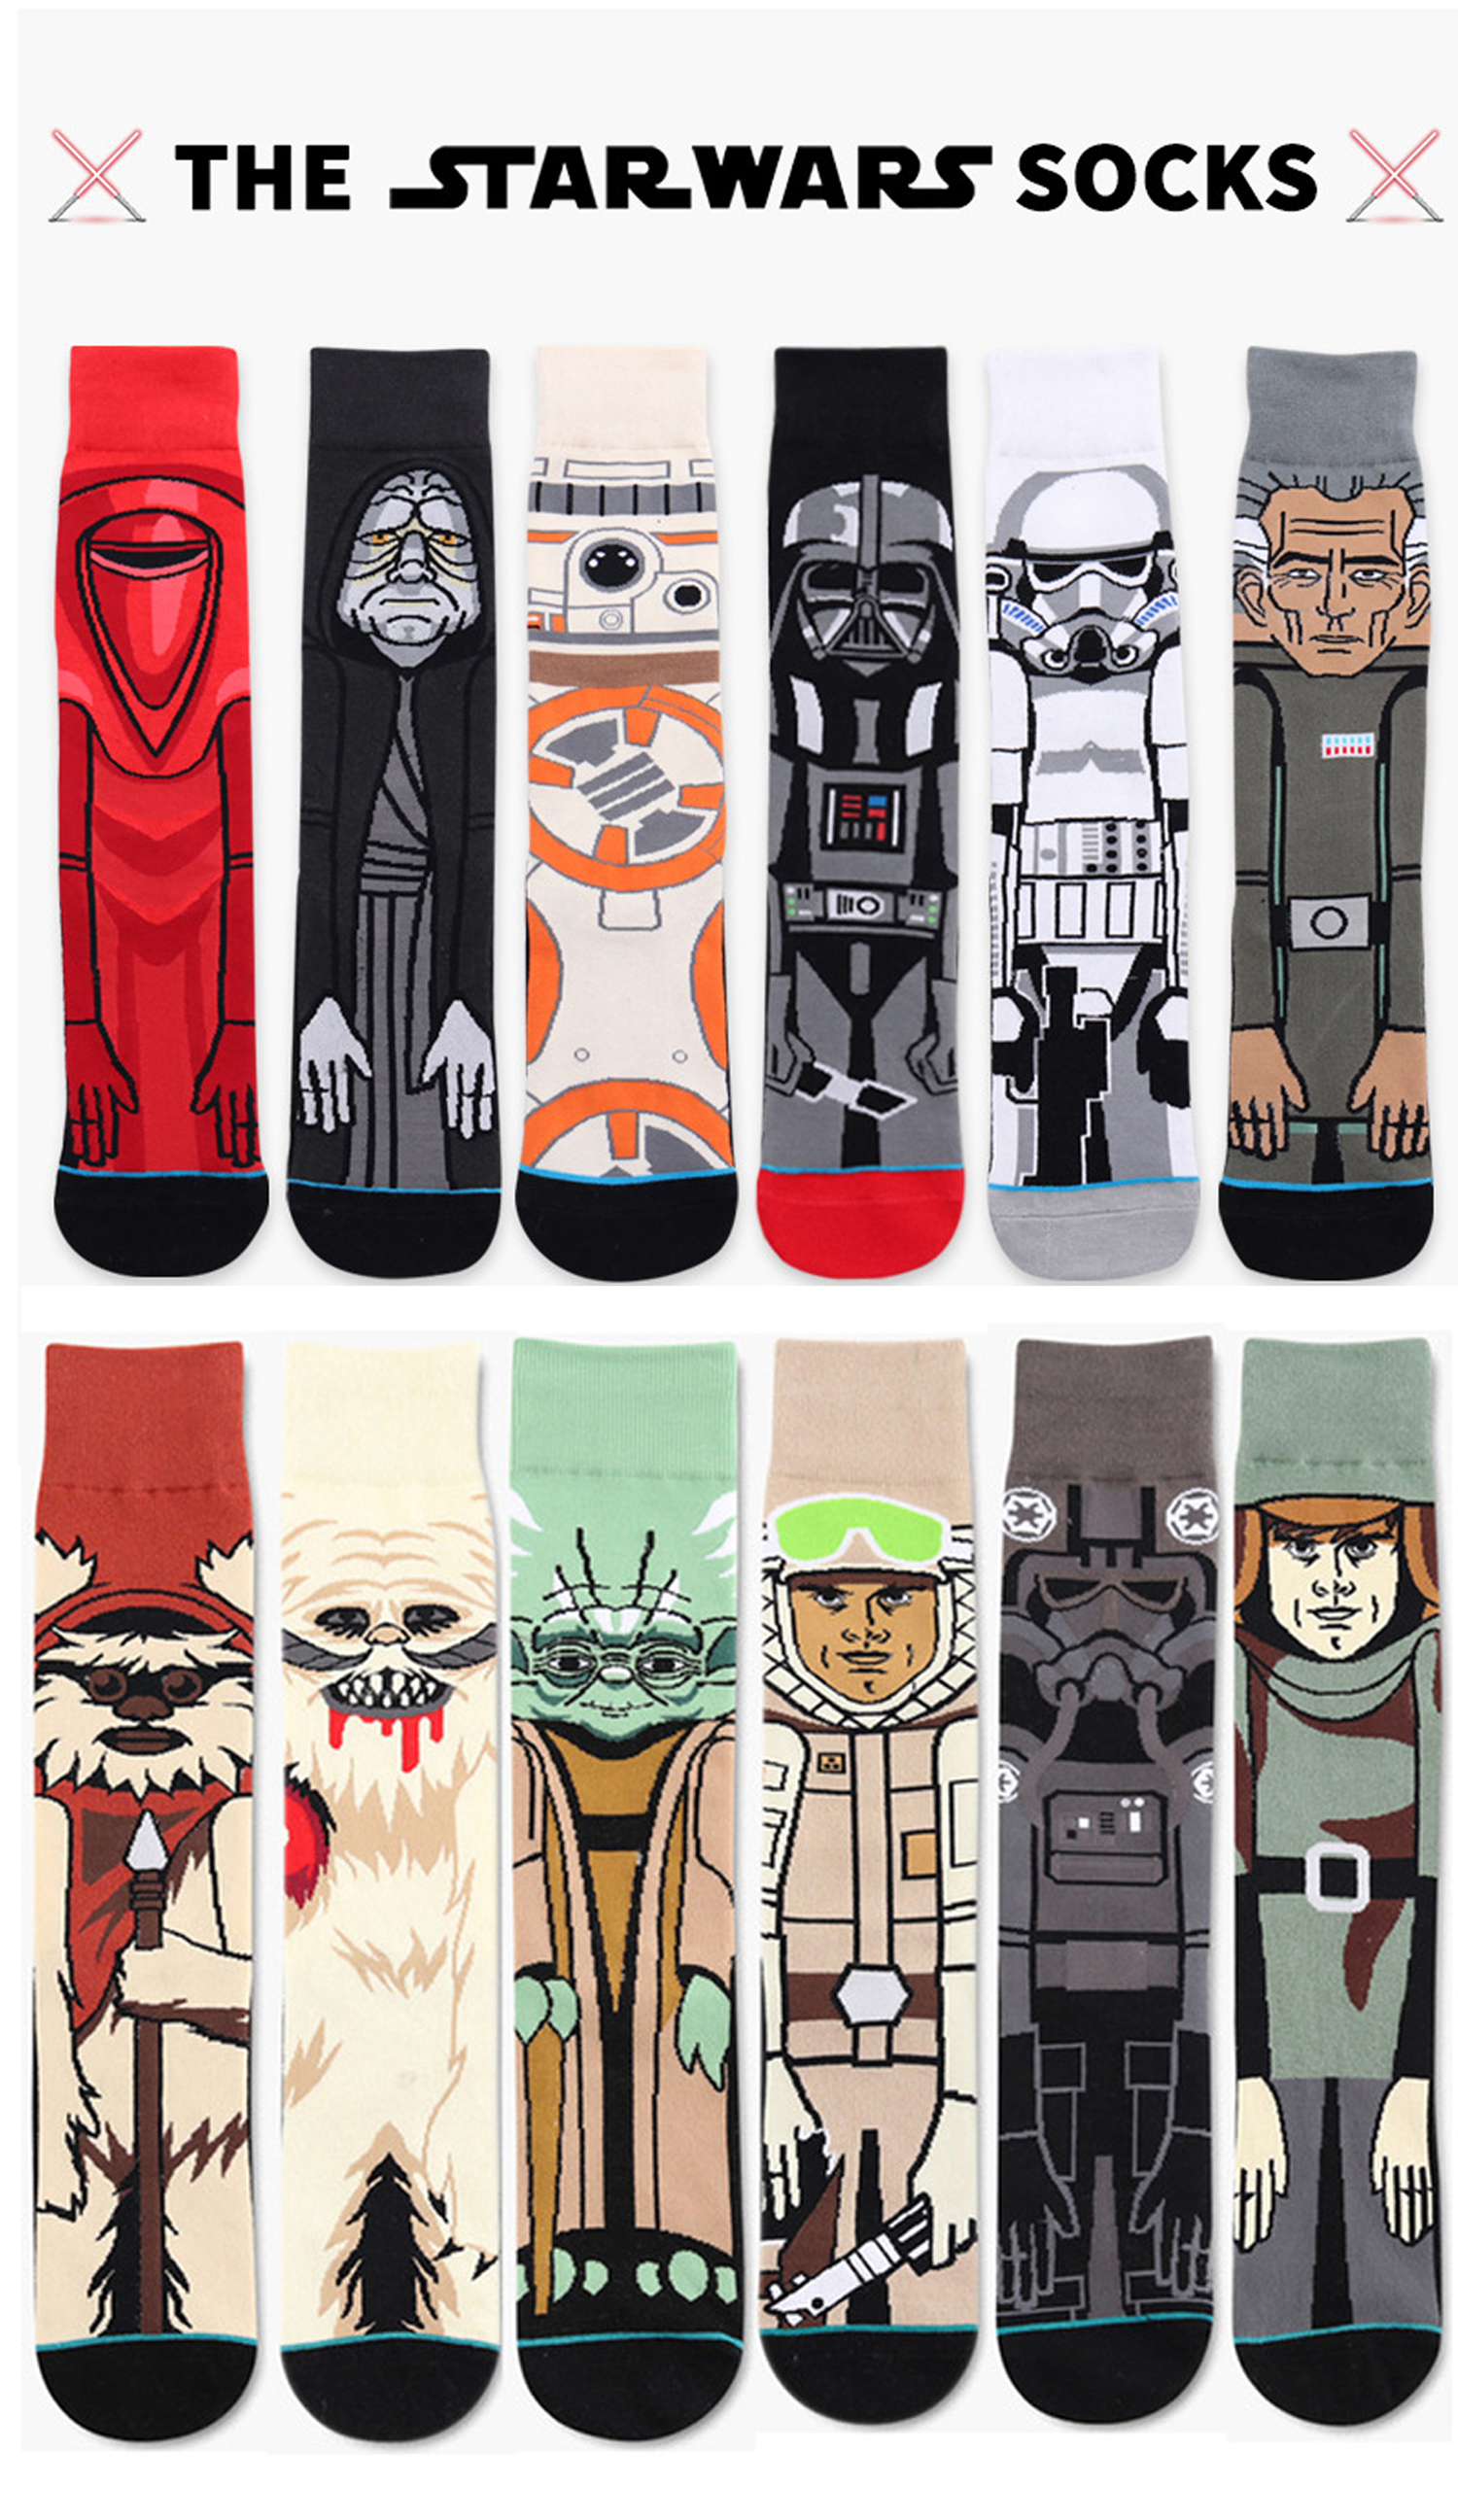 HIMEALAVO 2018 Star Wars Sale Hot Autumn And Winter New Cartoon Funny Men Socks Stockings Planet Battle Vader Socks